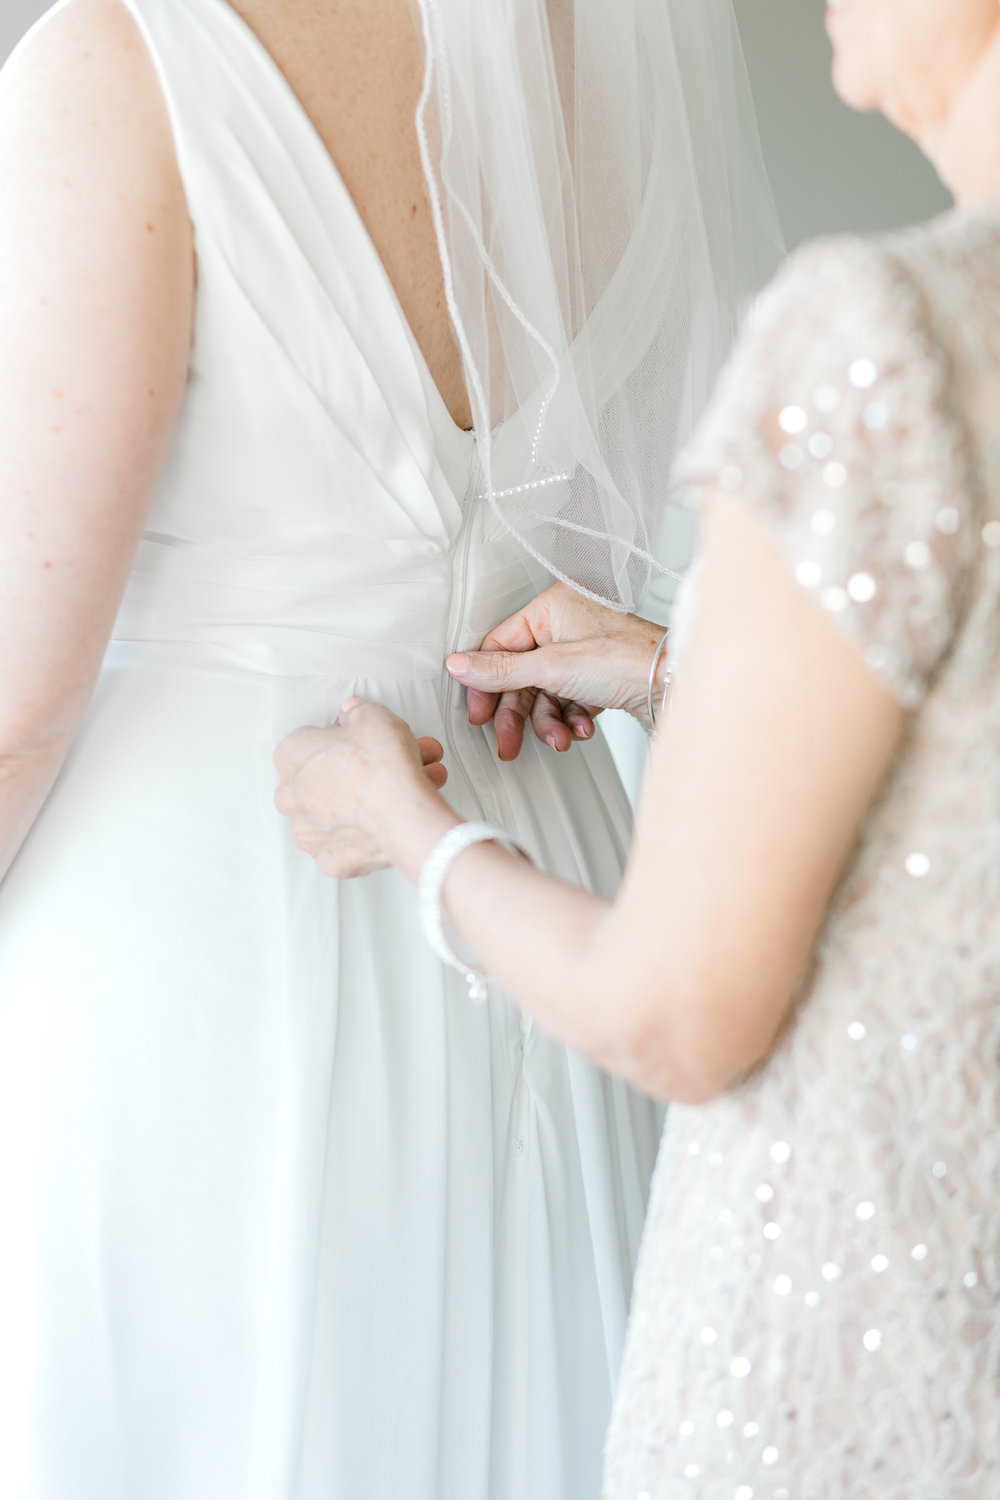 pleasant_valley_country_club_wedding_sutton_erica_pezente_photography (34).jpg